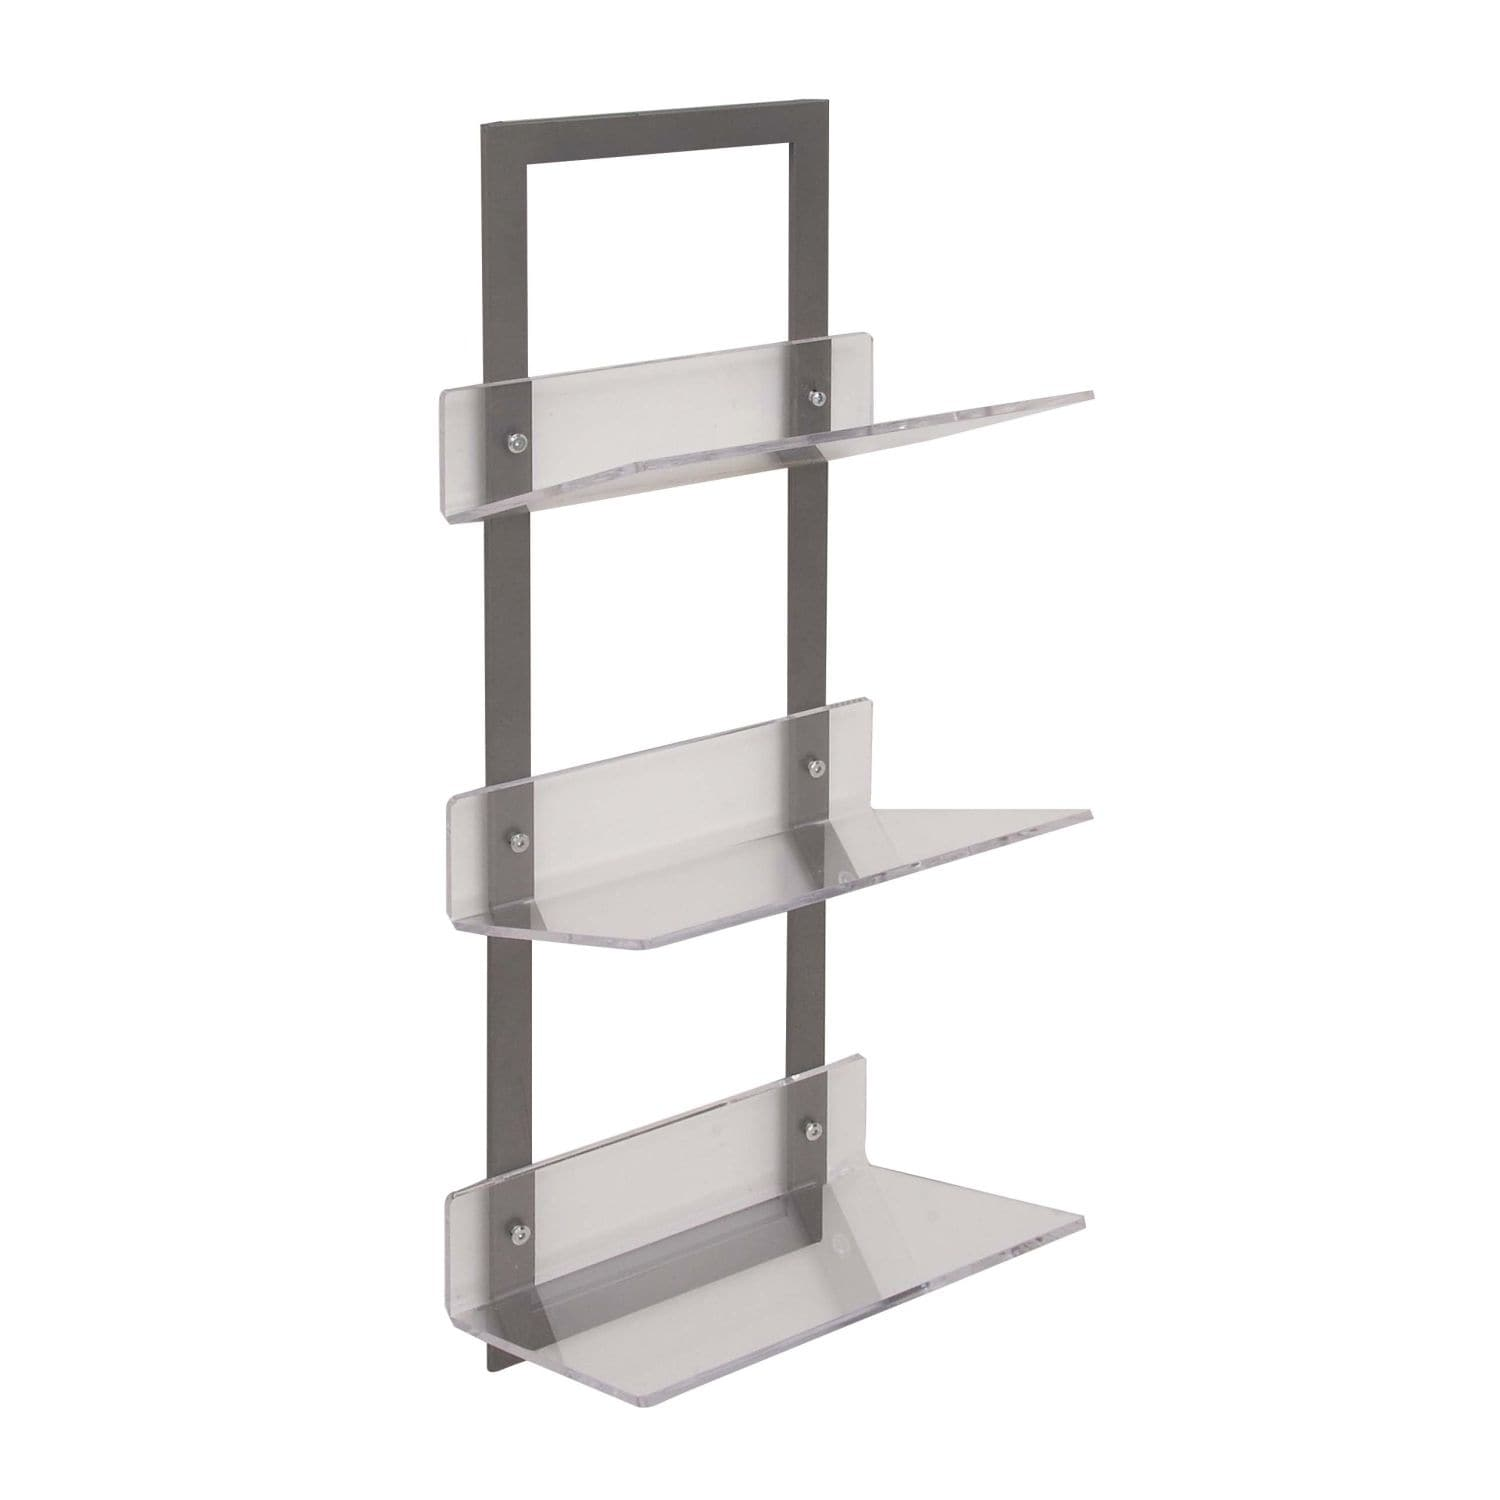 Contemporary 32 X 12 Inch Metal And Acrylic Wall Shelf By Studio 350 Free Shipping Today 17616594